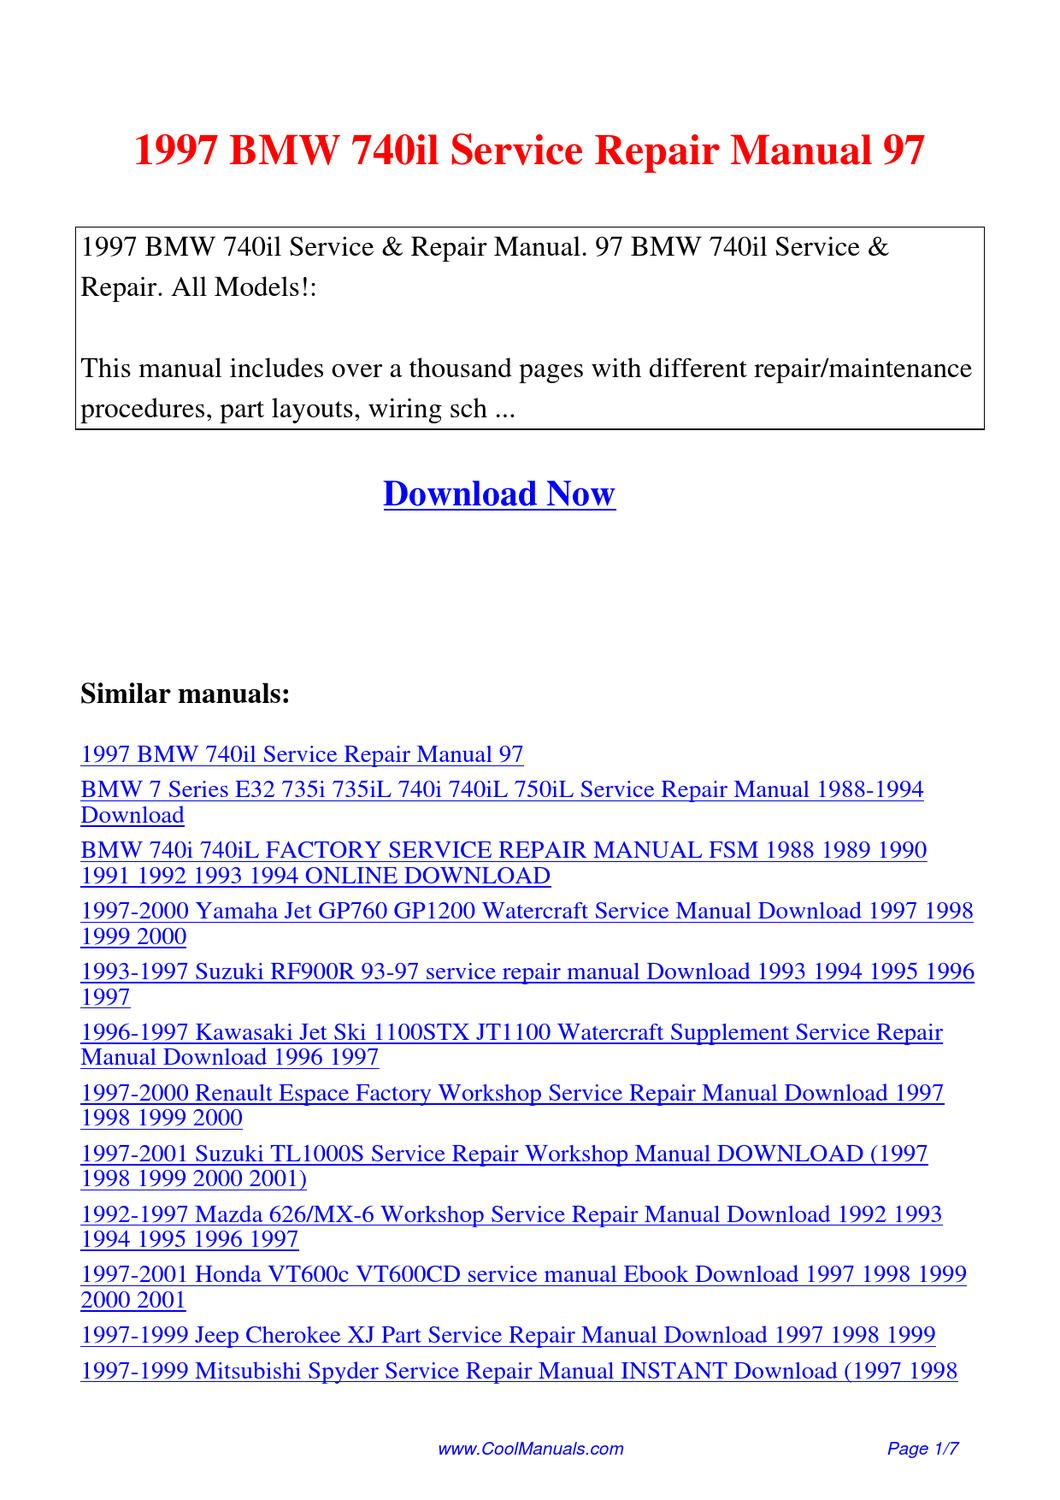 1997 bmw 740il service repair manual 97 by lan huang issuu. Black Bedroom Furniture Sets. Home Design Ideas